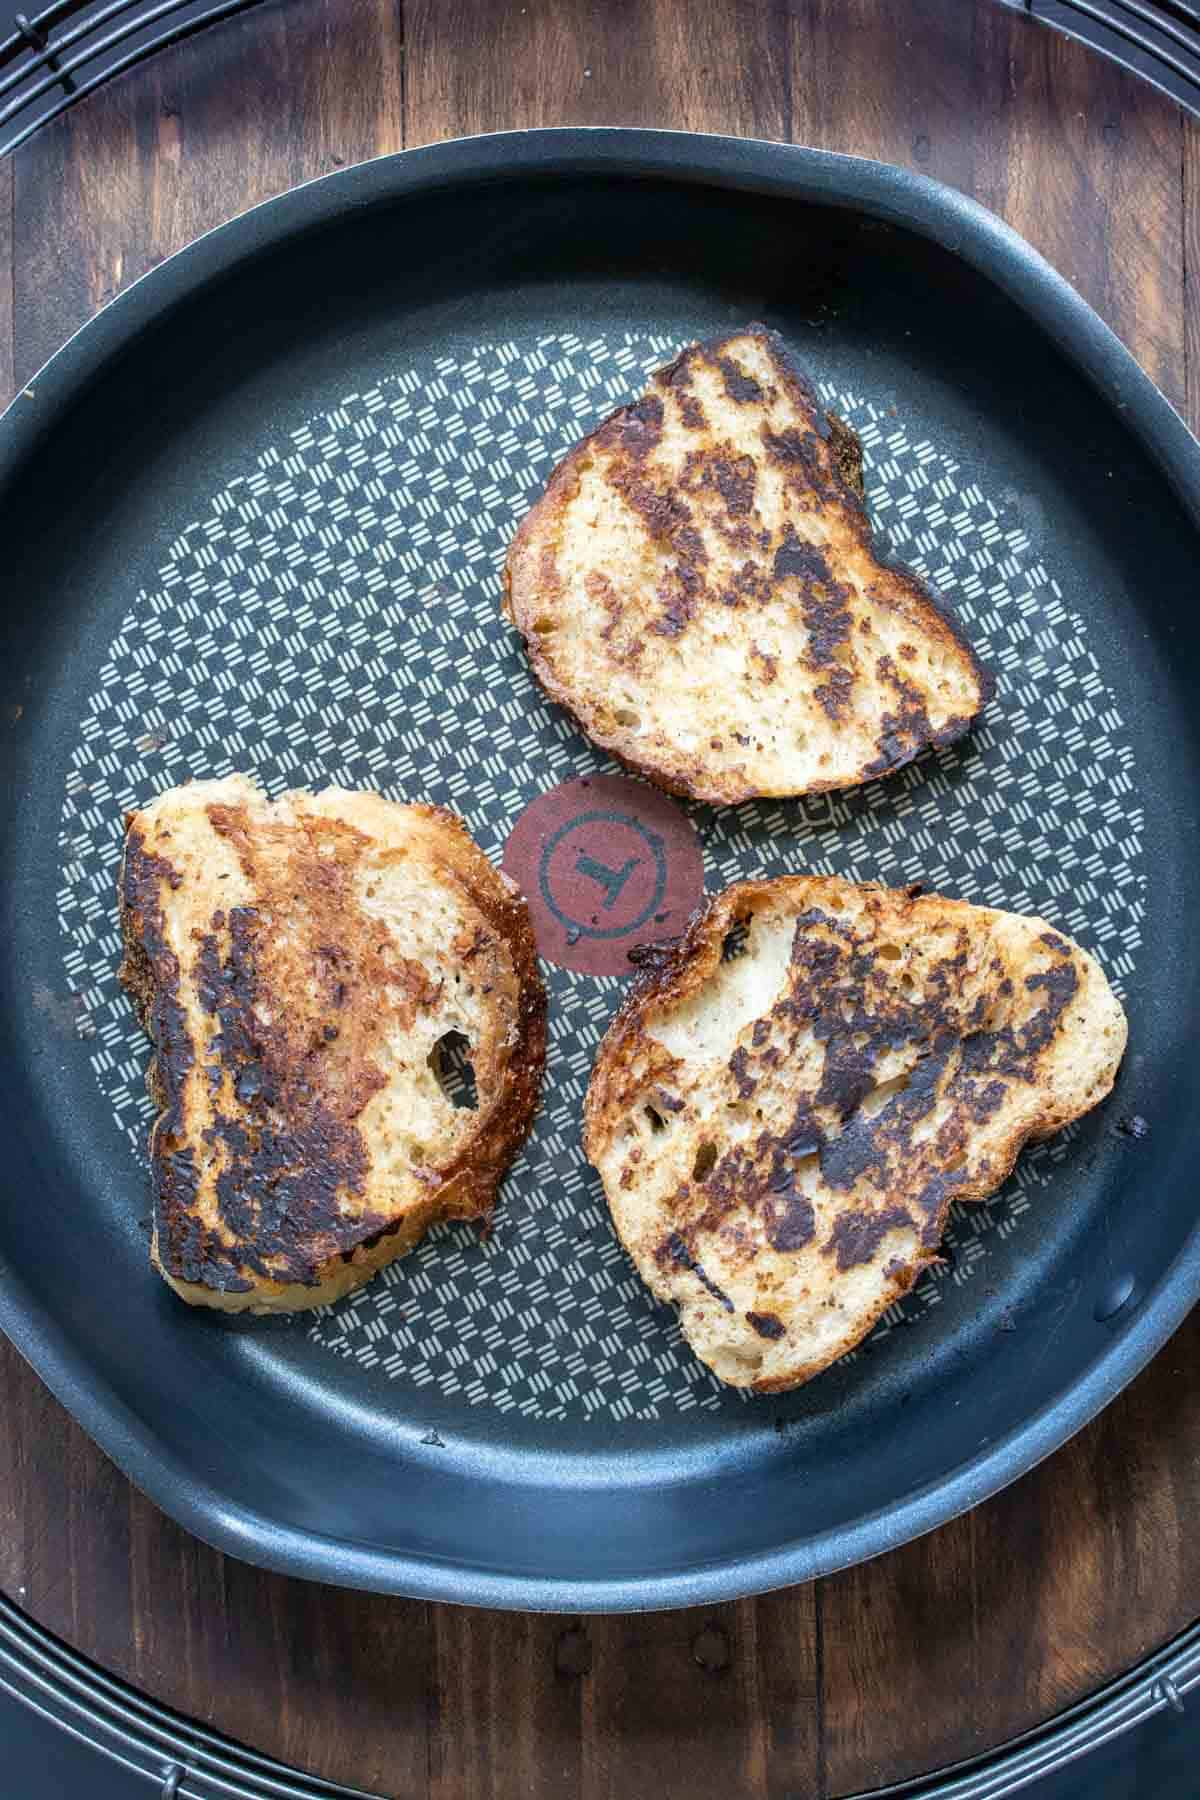 Three pieces of French toast being grilled on a pan